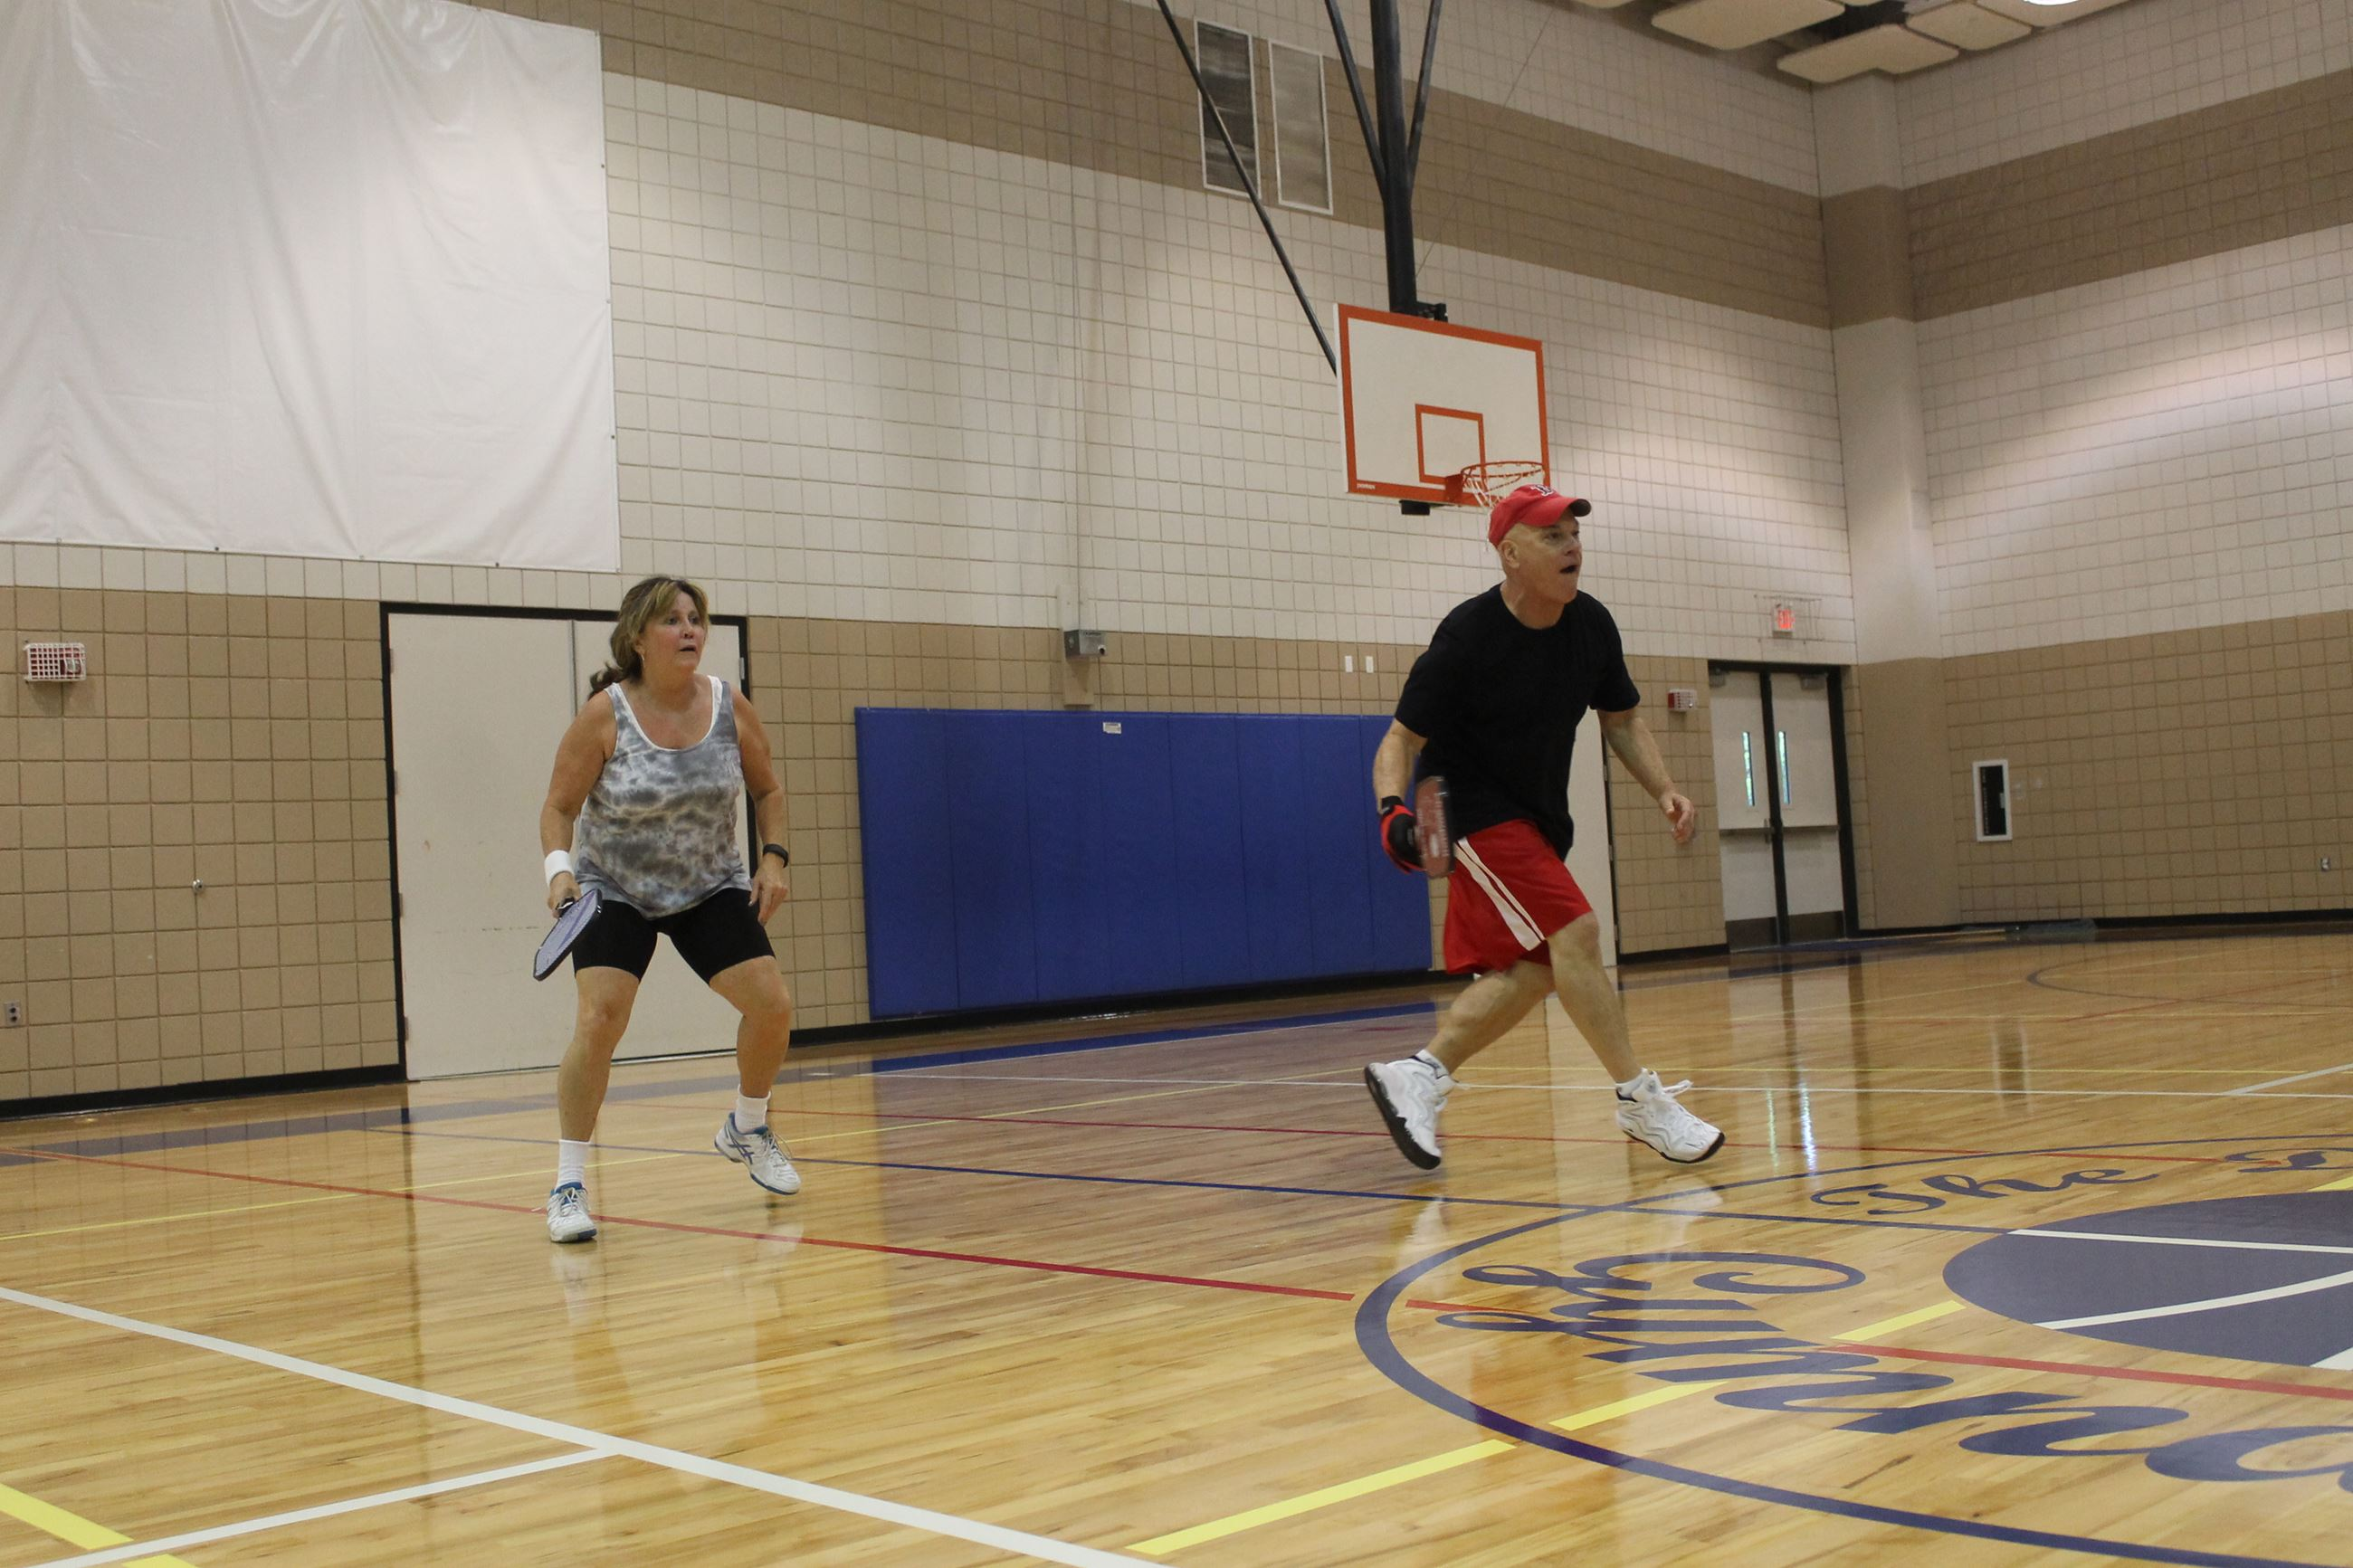 Two players playing pickleball